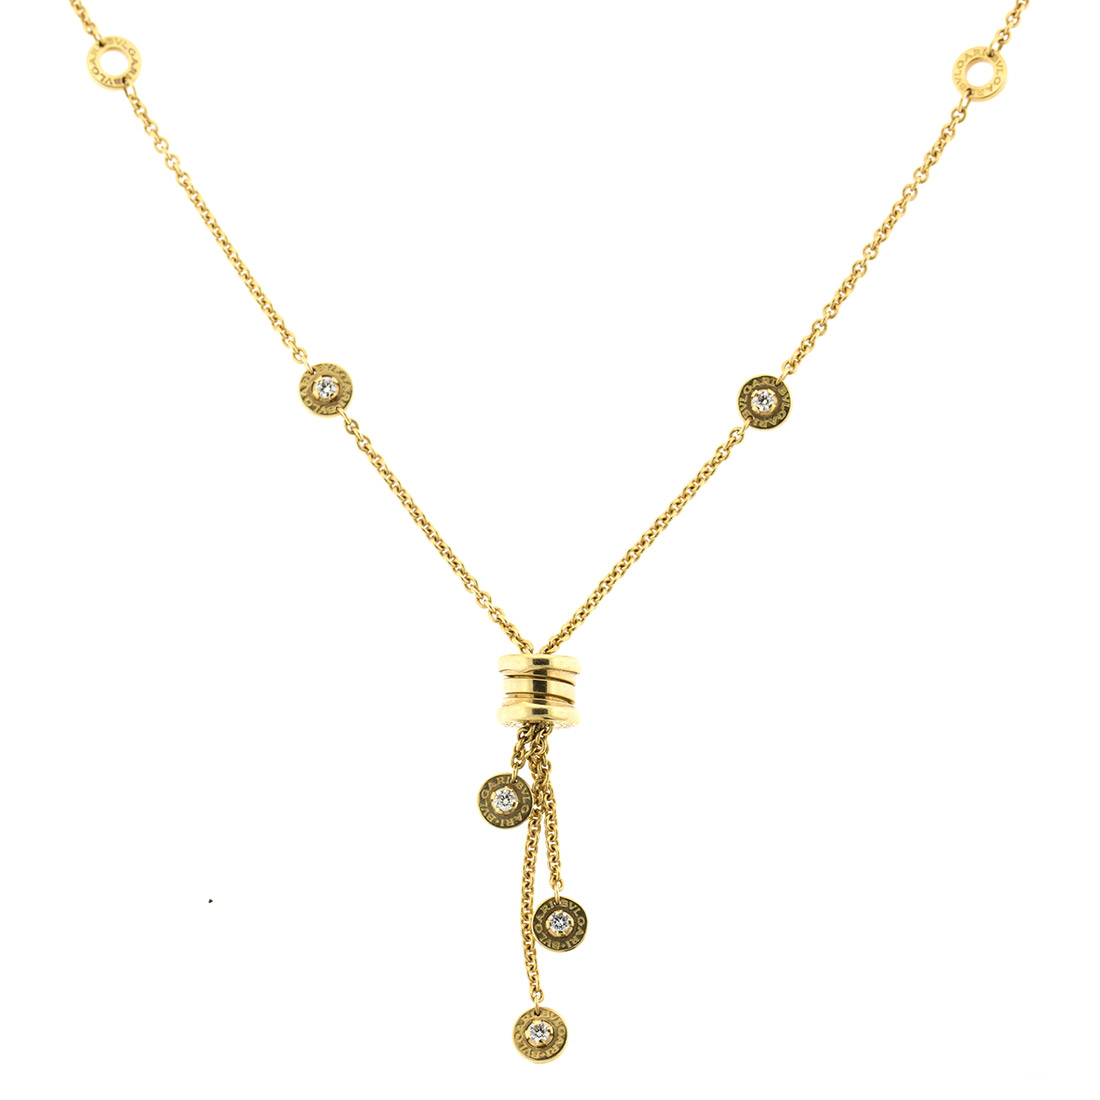 Bulgari Bzero Yellow Gold Diamond Necklace